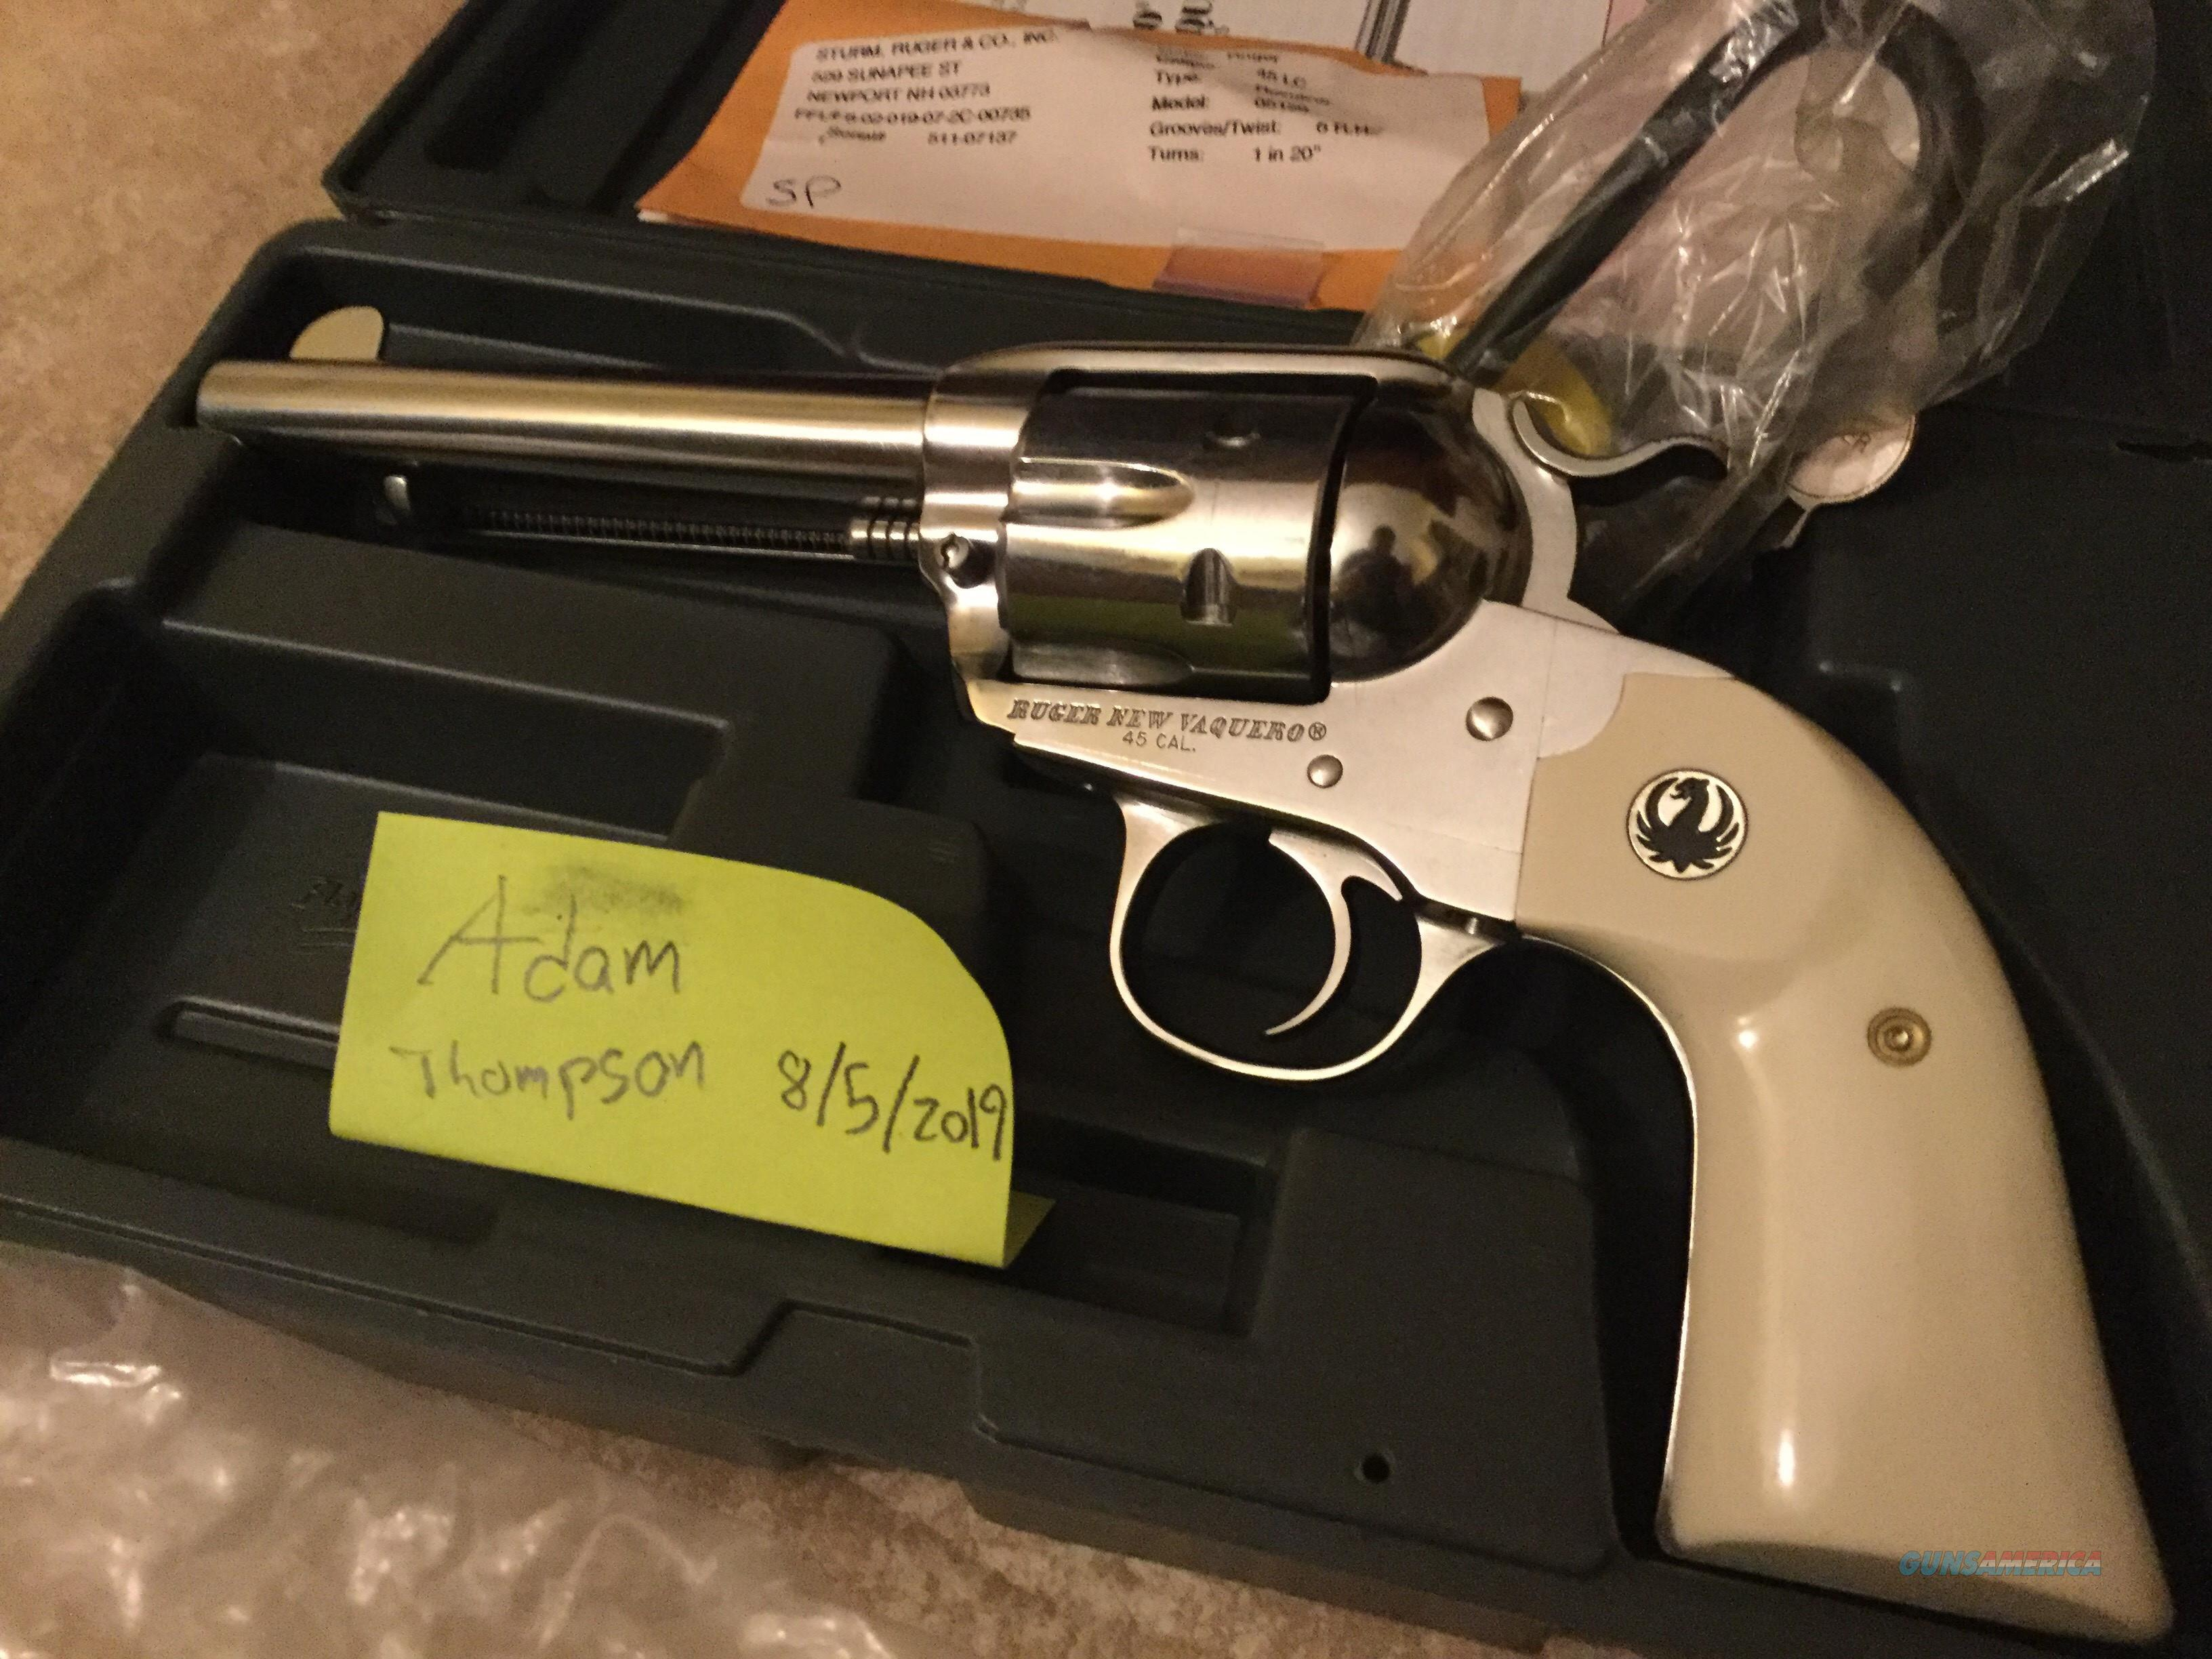 """Ruger New Vaquero Bisley Stainless Steel Ivory 5.5"""" 45 colt  Guns > Pistols > Ruger Single Action Revolvers > Cowboy Action"""